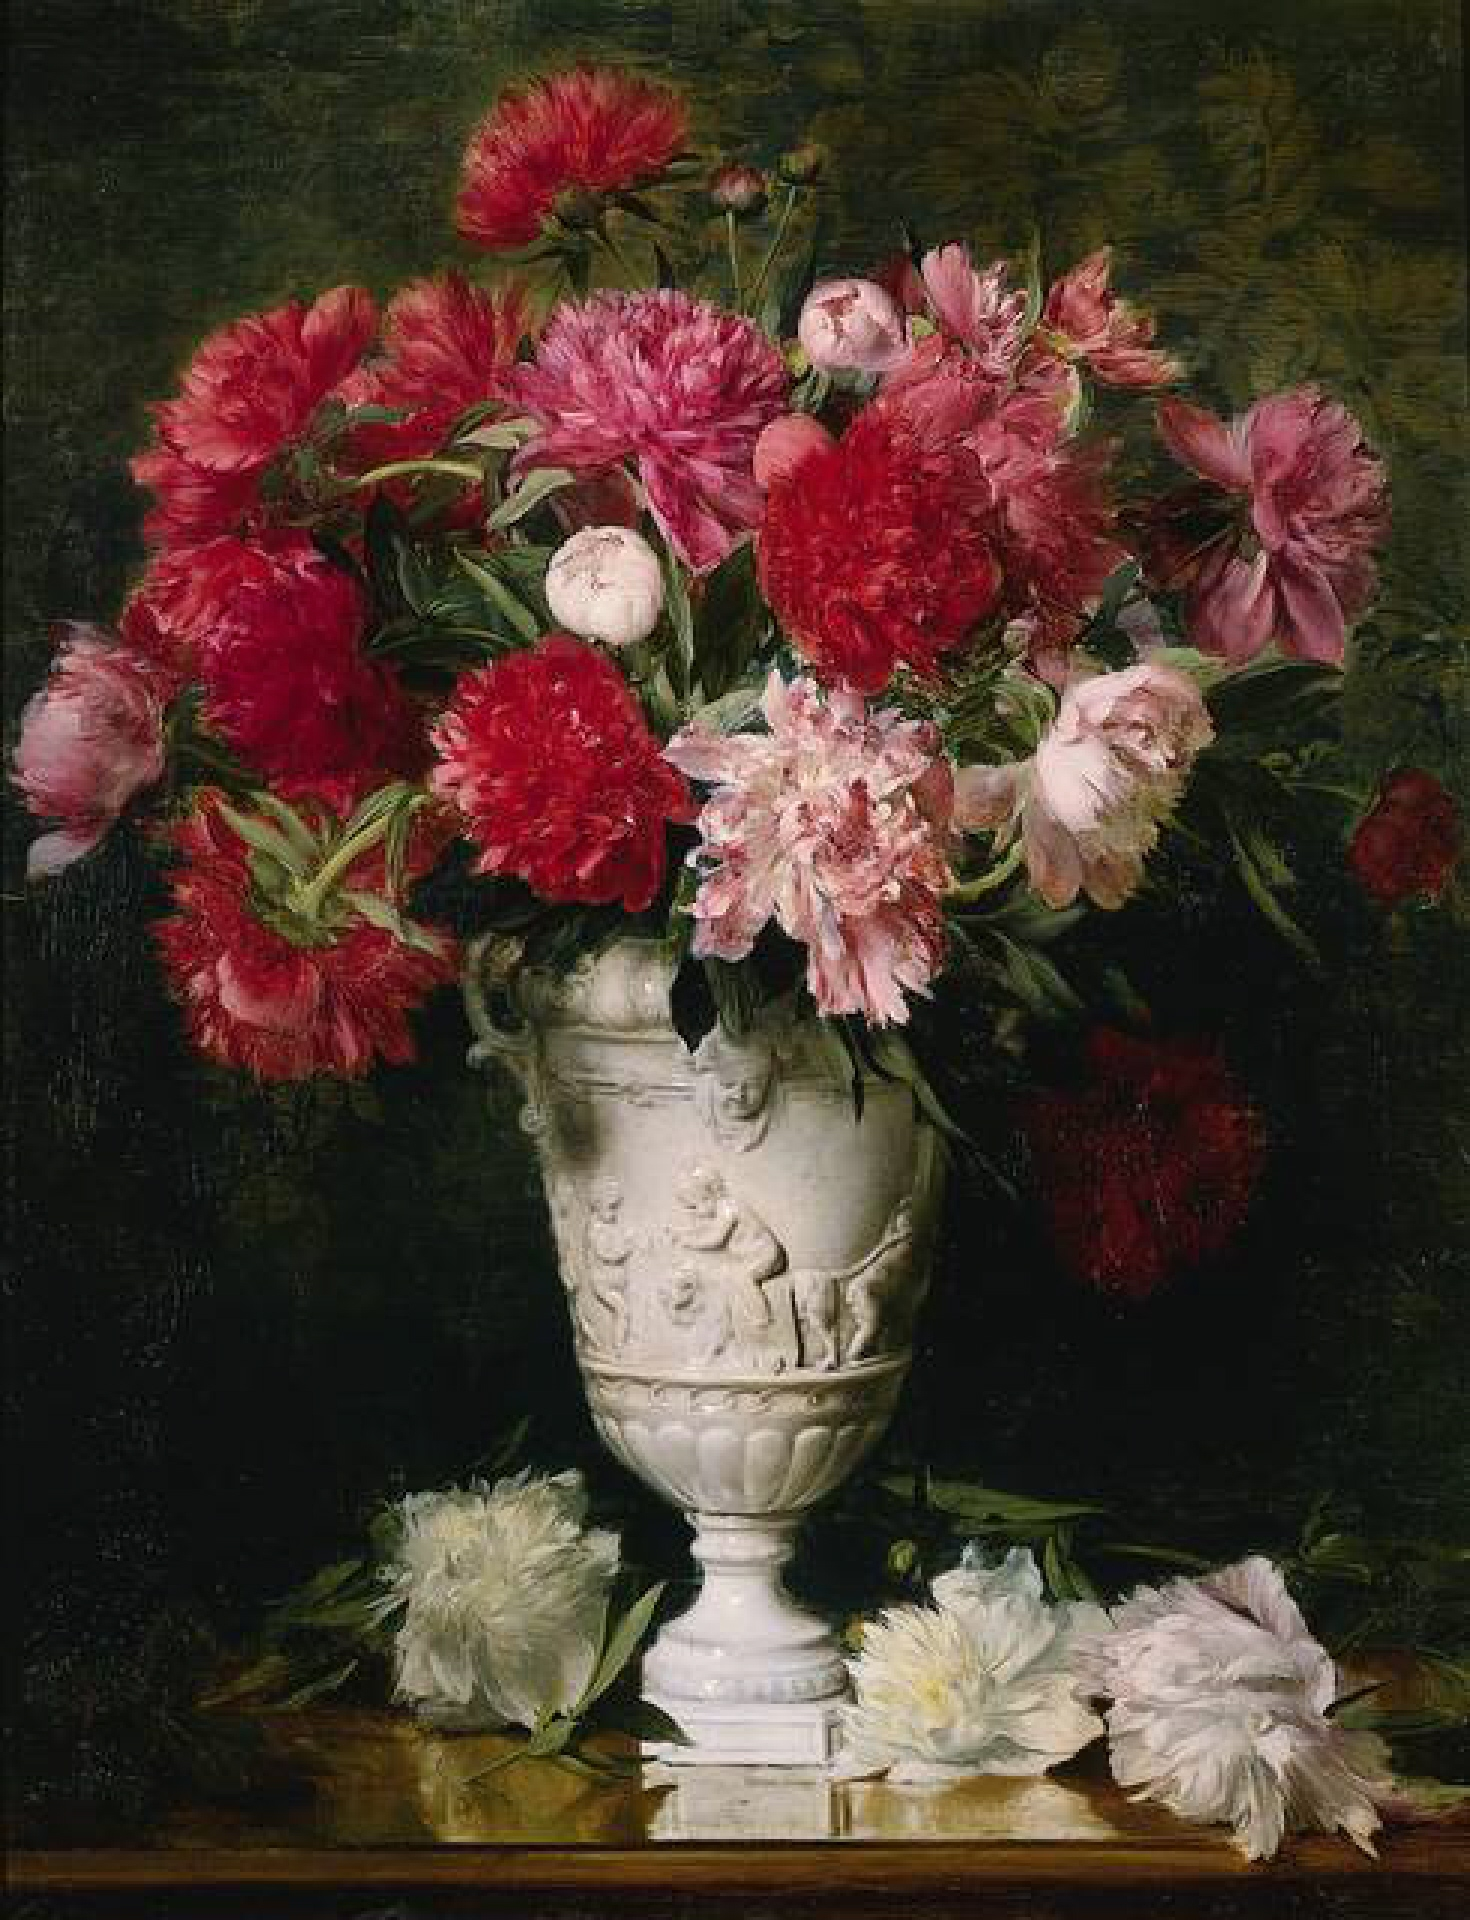 FLOWERS BY THE VASE – Vases Sale